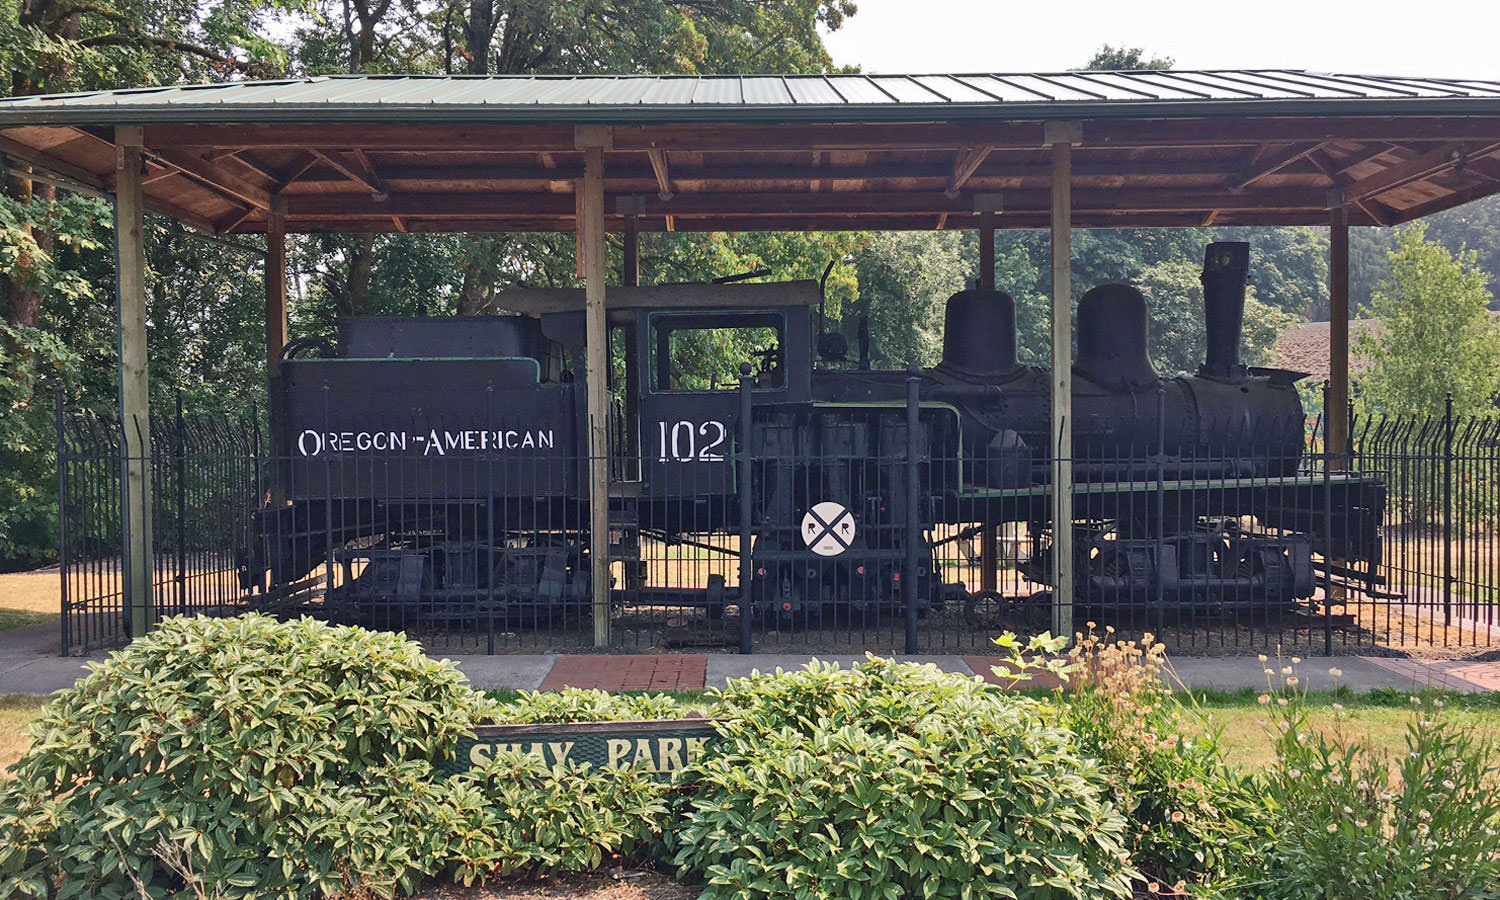 A retired black locomotive sits under a shelter in a green park.